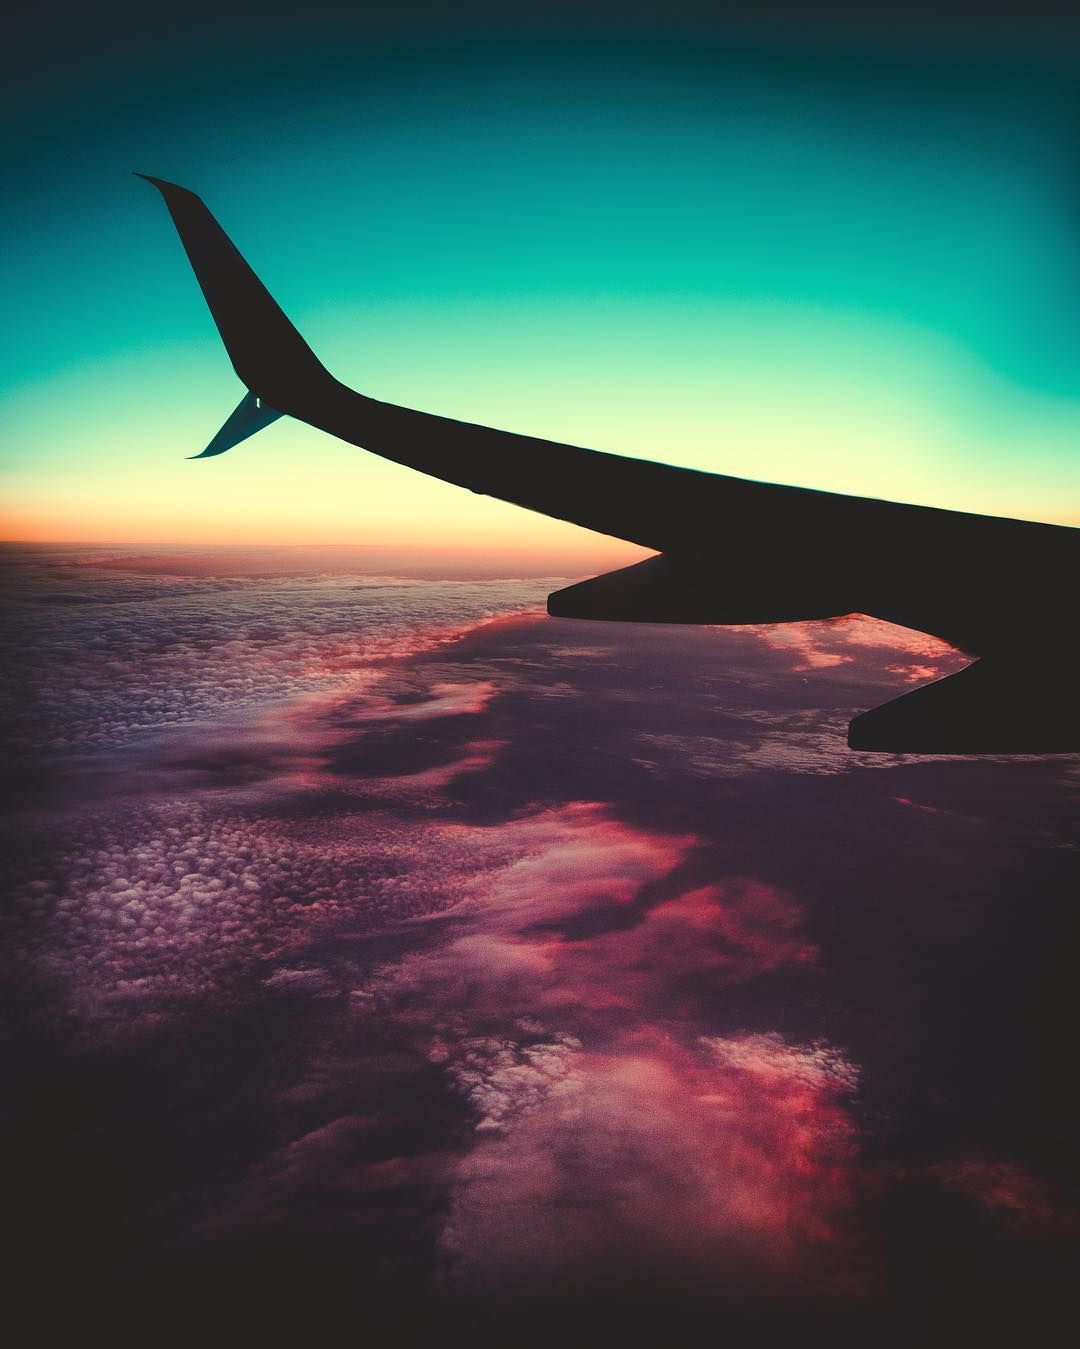 Here S One From A Trip Earlier This Year My First Time Seeing A Sunset Burn From An Airplane Airplane Wallpaper Iphone Wallpaper Airplane Travel Wallpaper